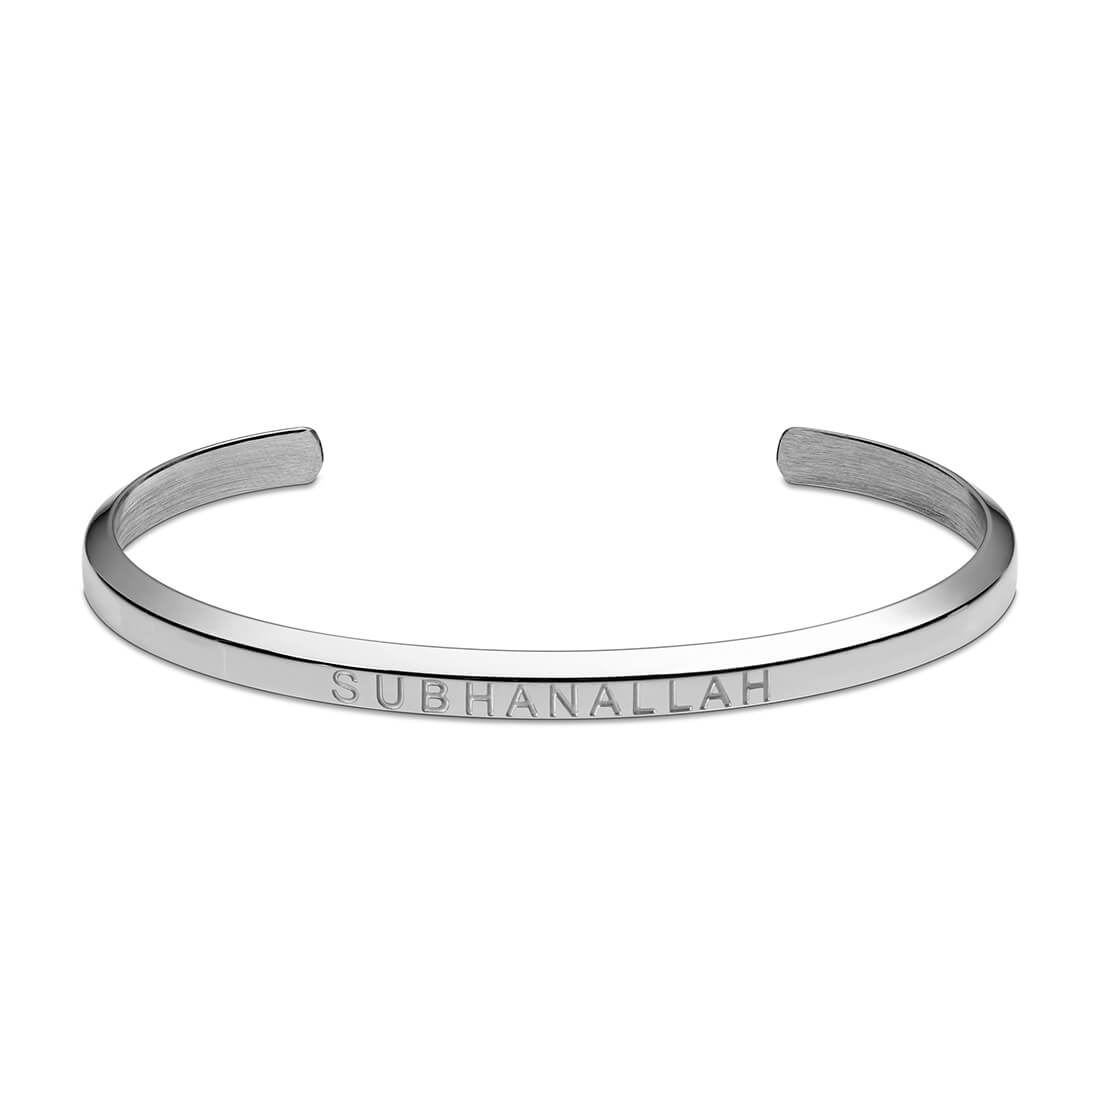 Subhanallah Cuff Bracelet in Silver by Crscnt Moon